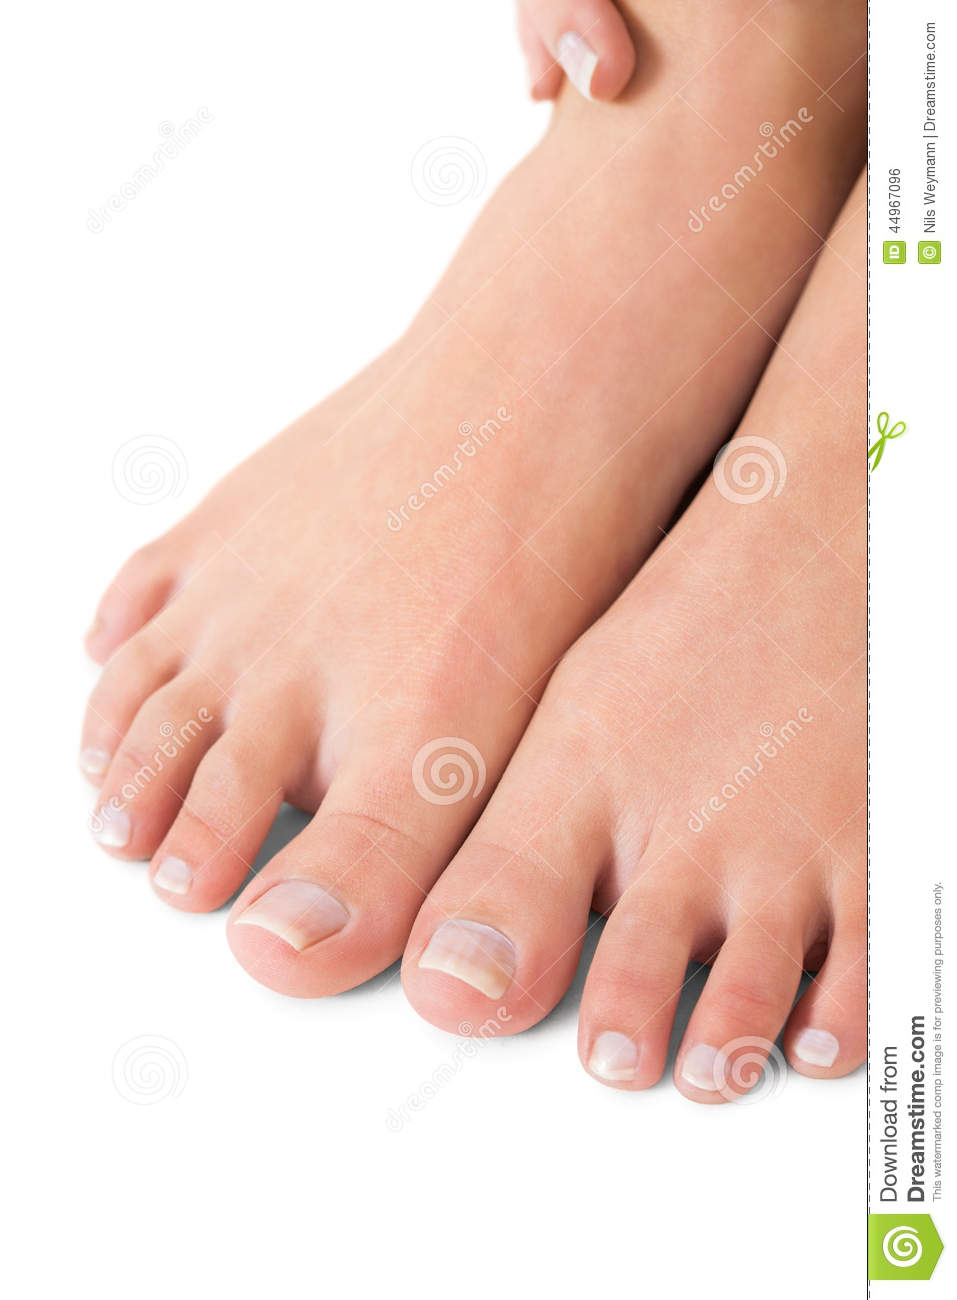 Woman With Manicured Natural Nails Stock Photo